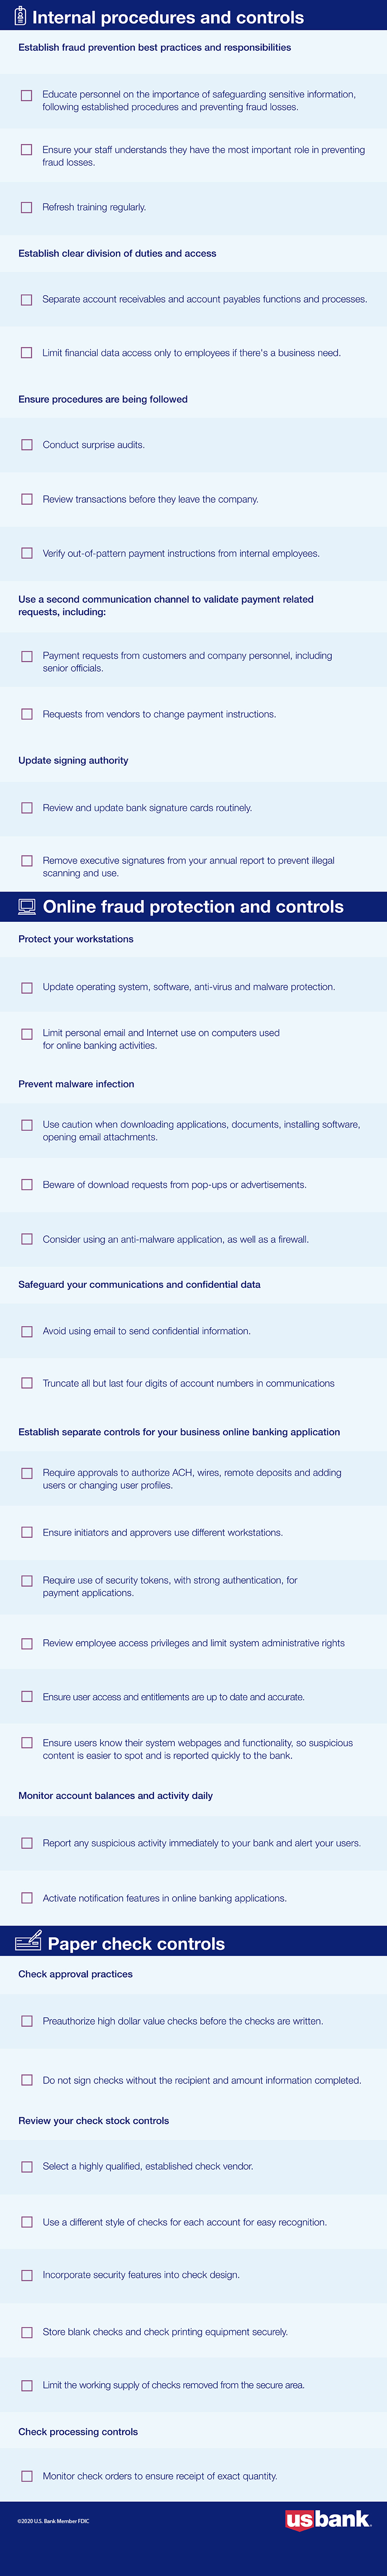 Fraud prevention checklist